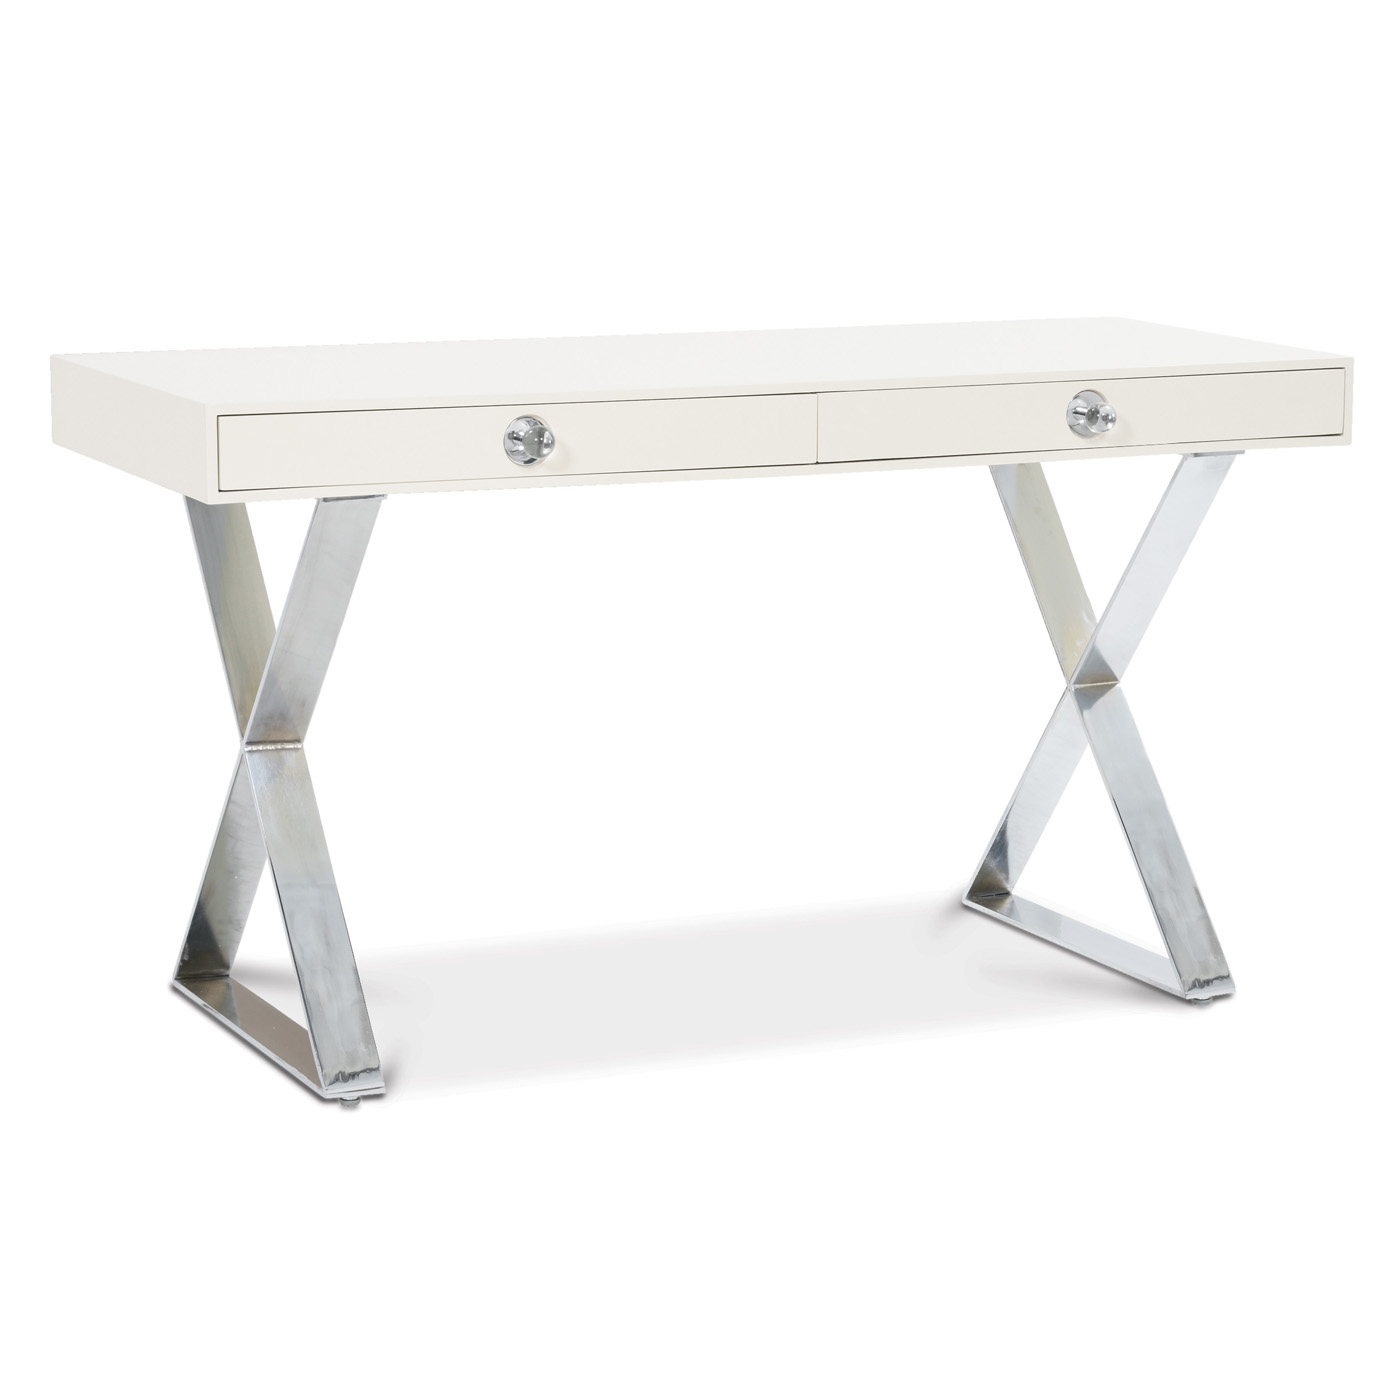 White Lacquer Desk With An X Base And Polished Nickel Legs From Jonathan Adler